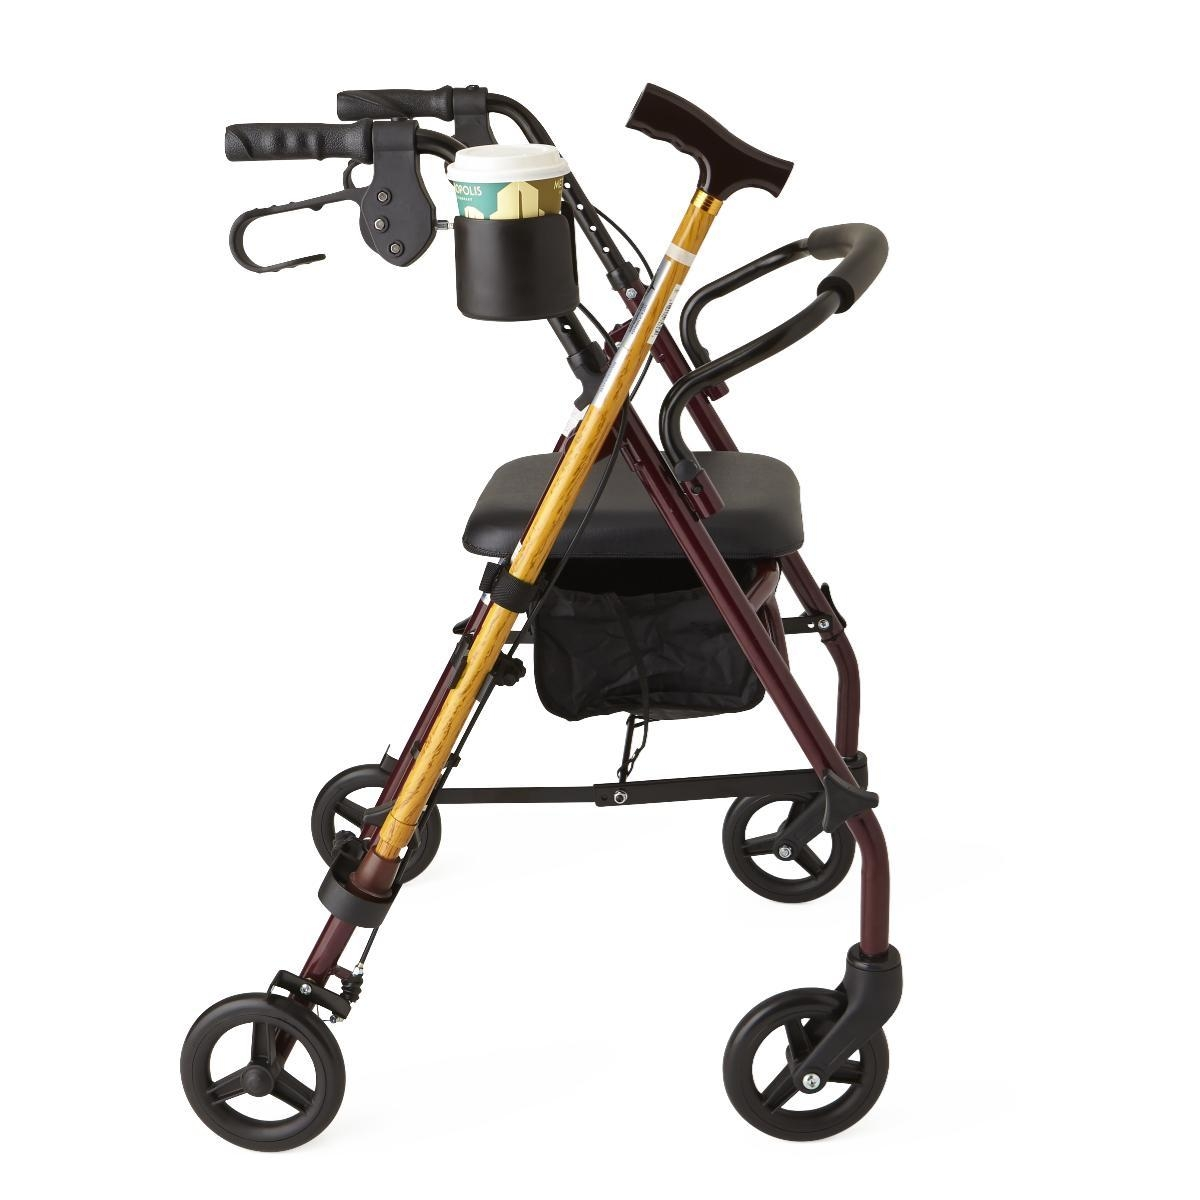 Therapy & Fitness Mobility Aids Walkers Walkers - Mdscupcanehw - Holder Cup And Cane Combo Pack MDSCUPCANEHW